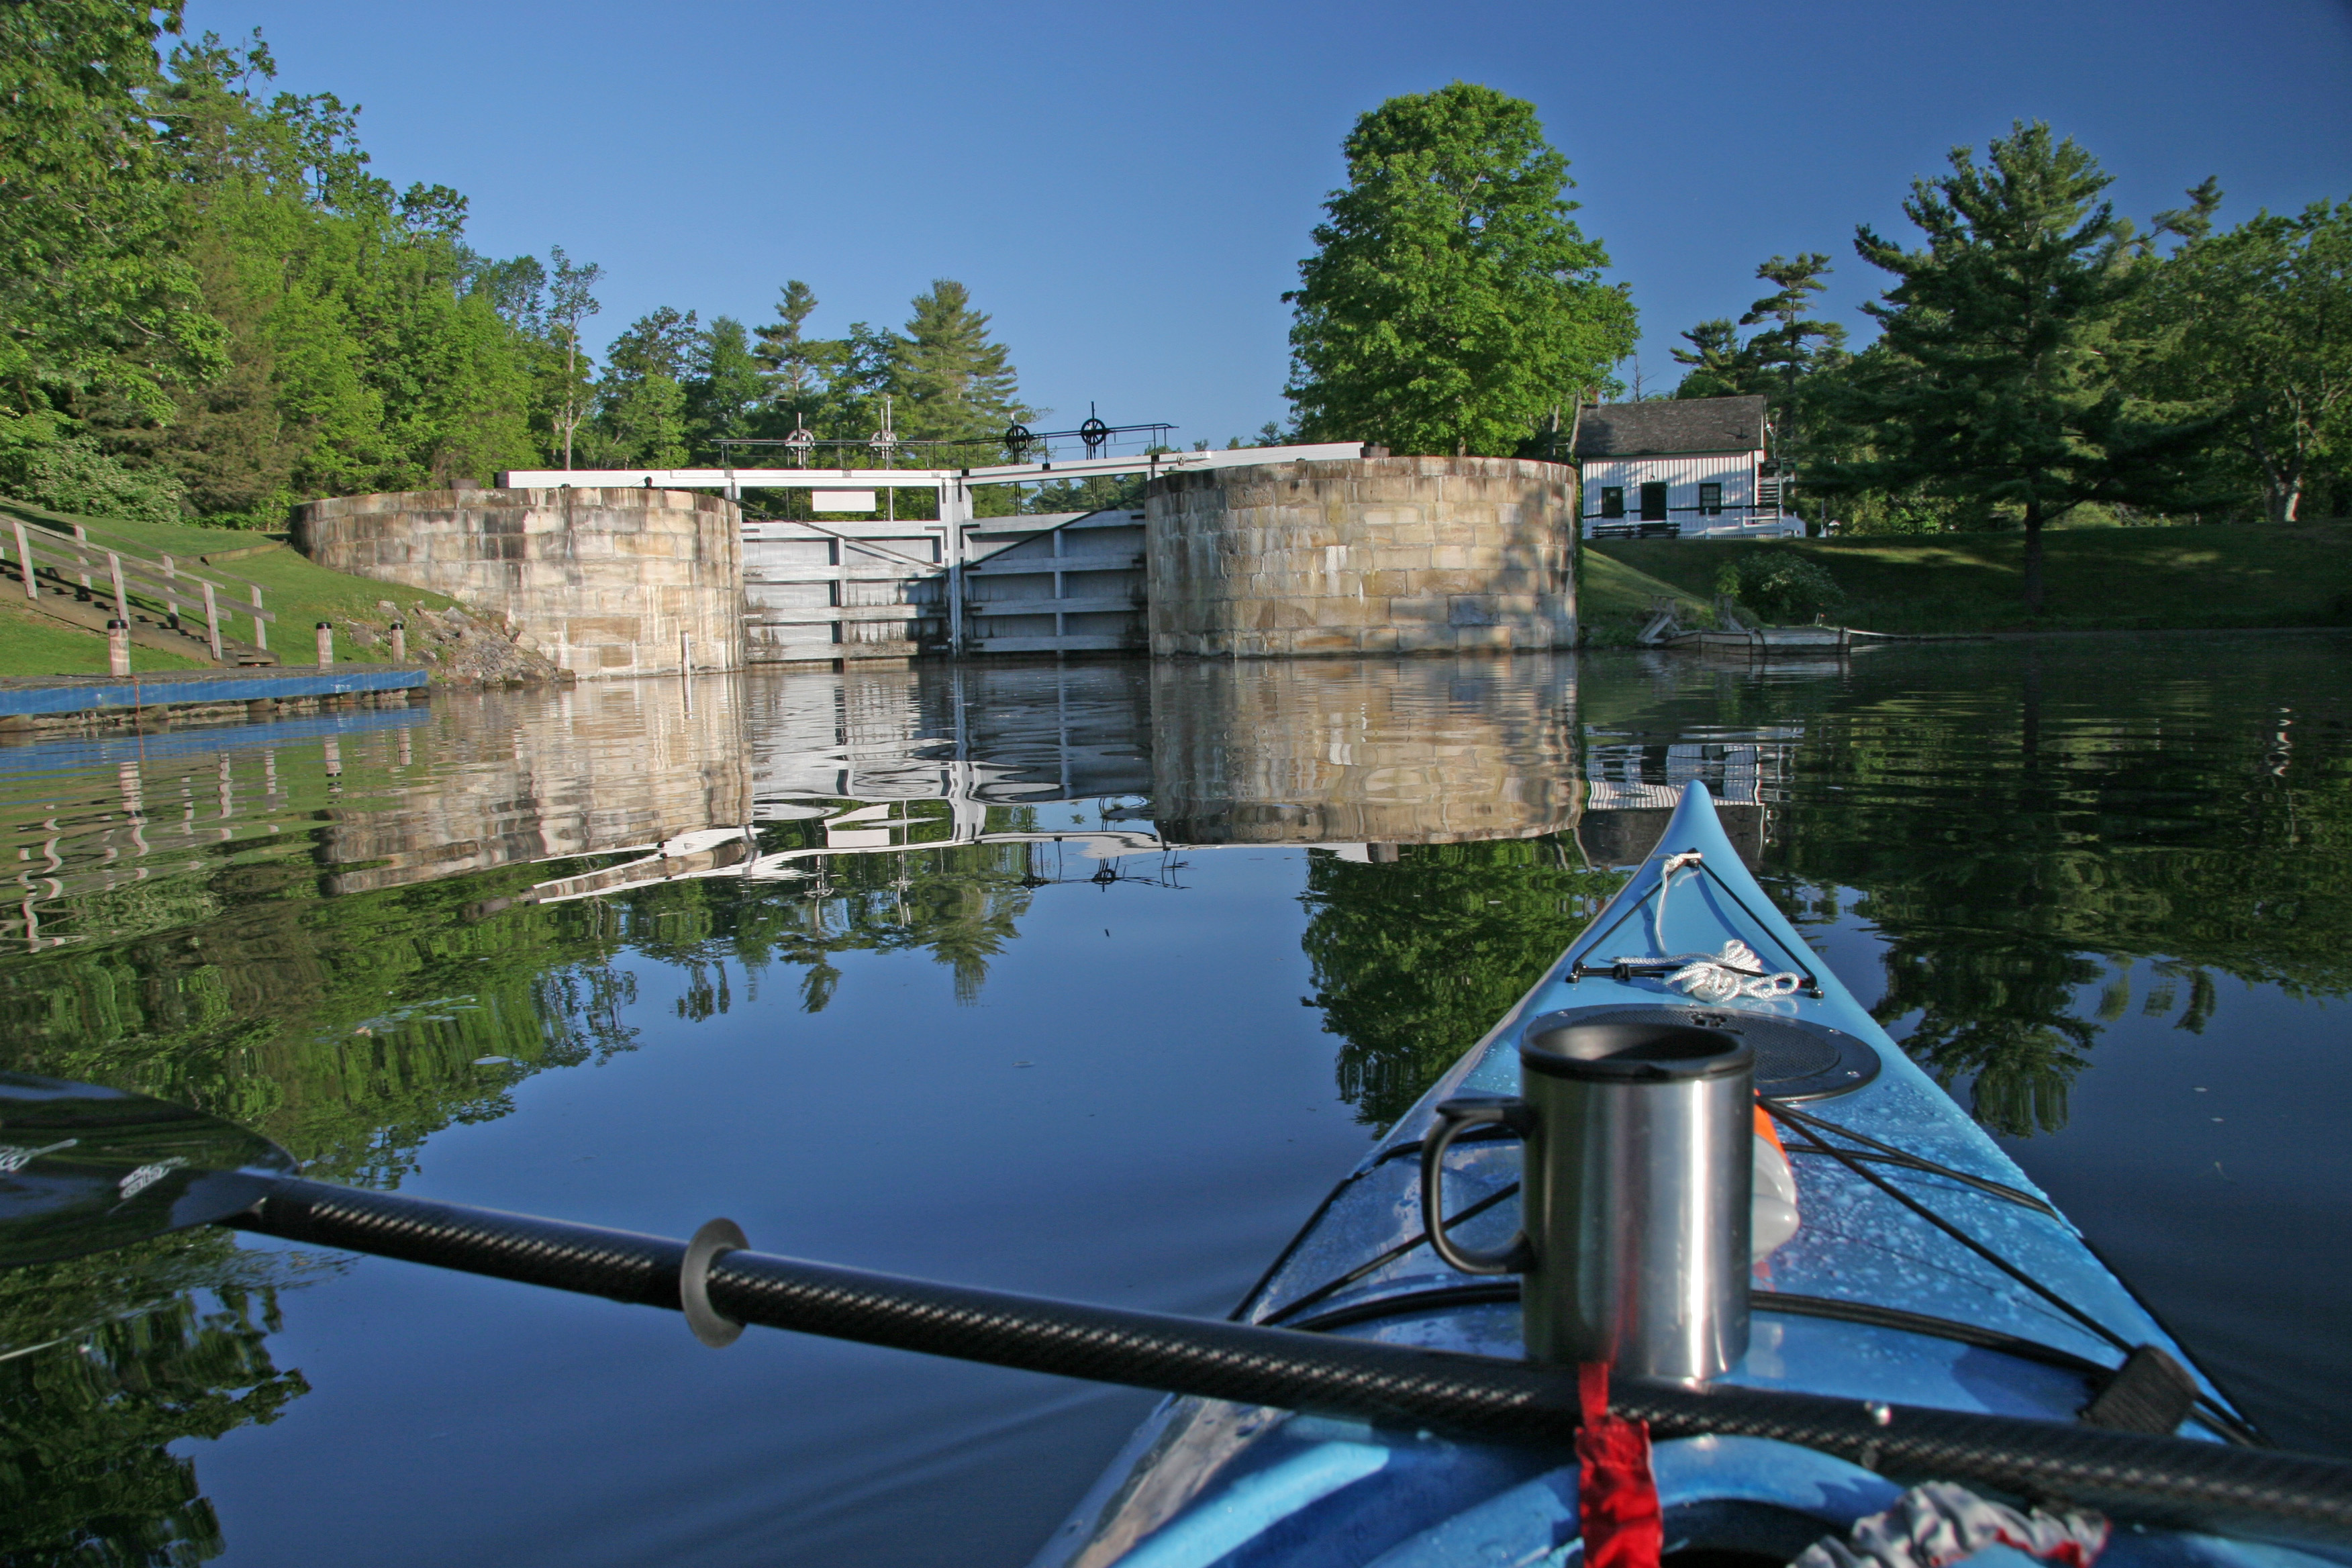 Image of a First person view in a kayak.